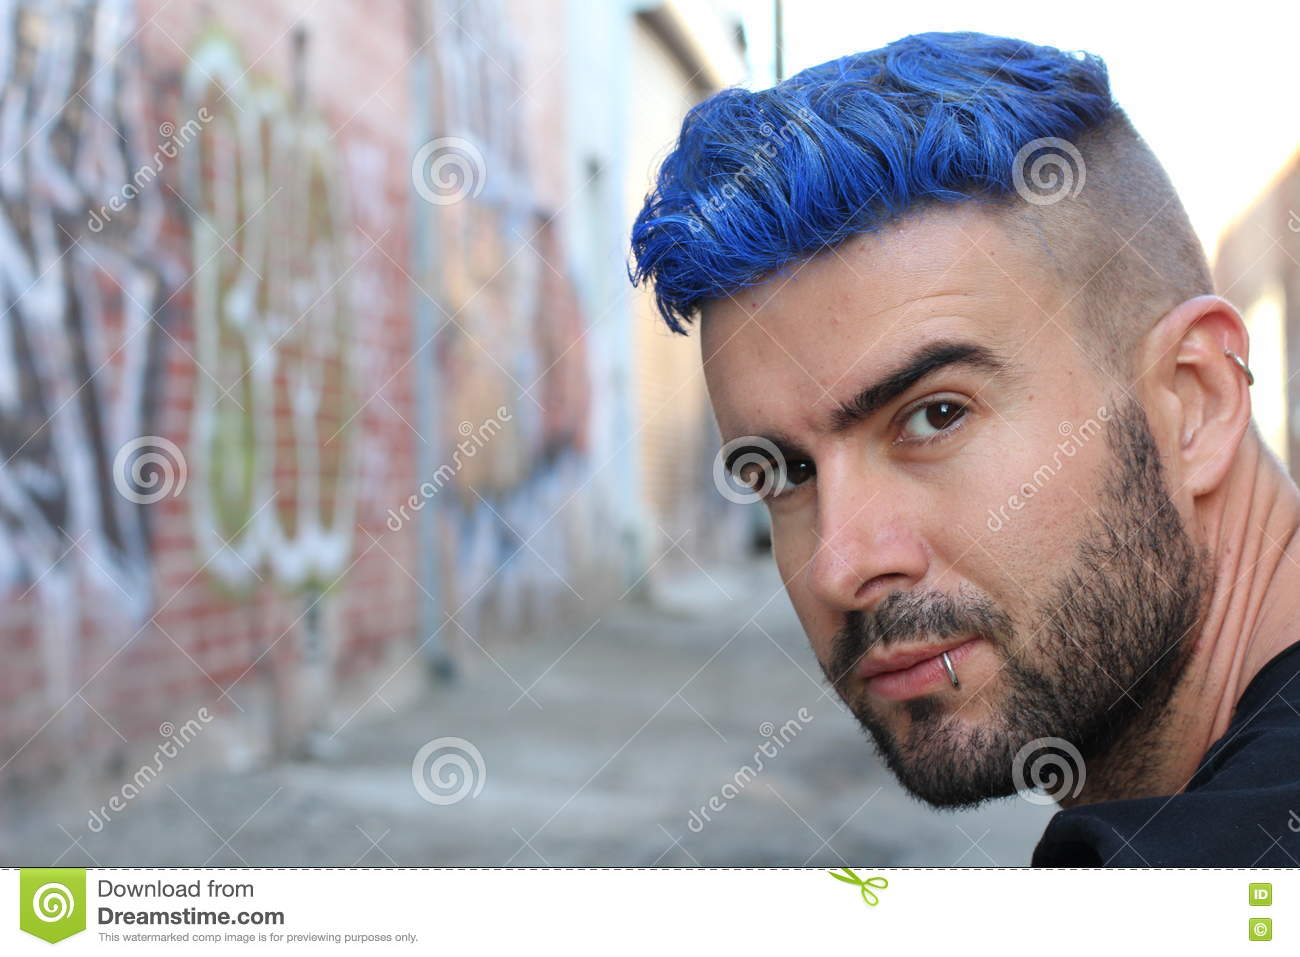 Handsome Stylish Young Man With Artificially Coloured Blue